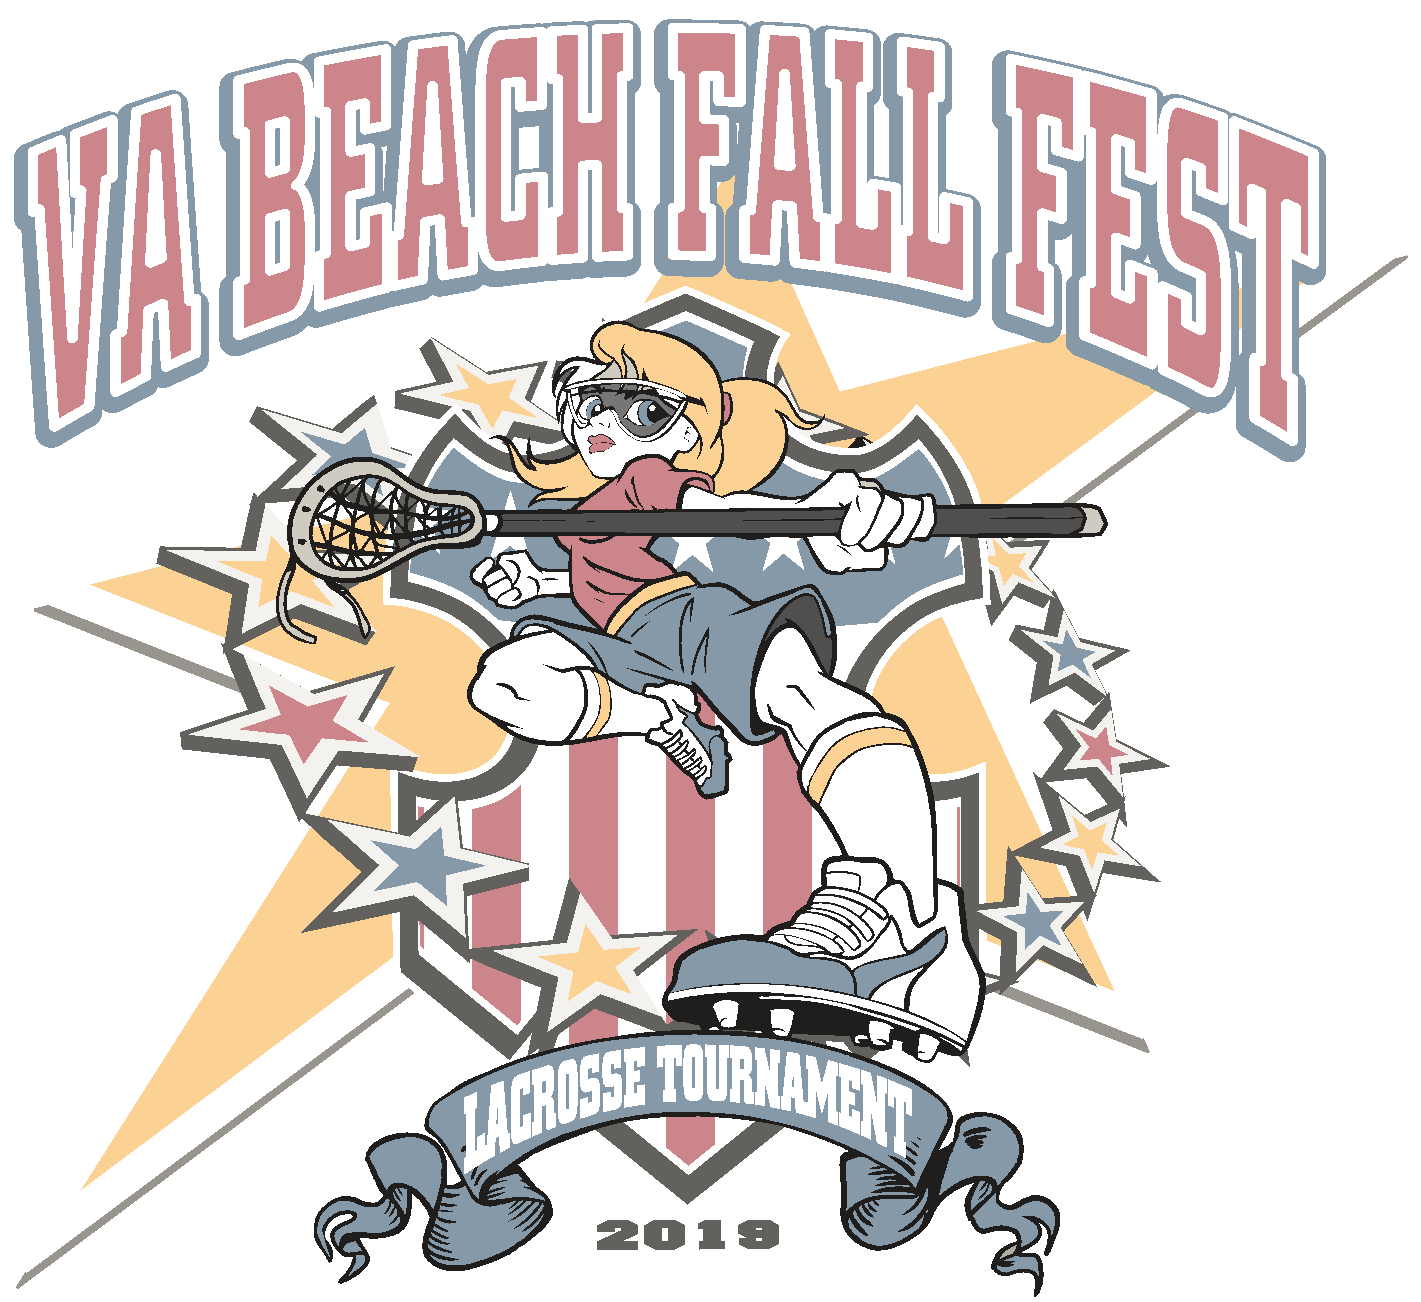 Virginia Beach Fall Fest Lacrosse Tournament